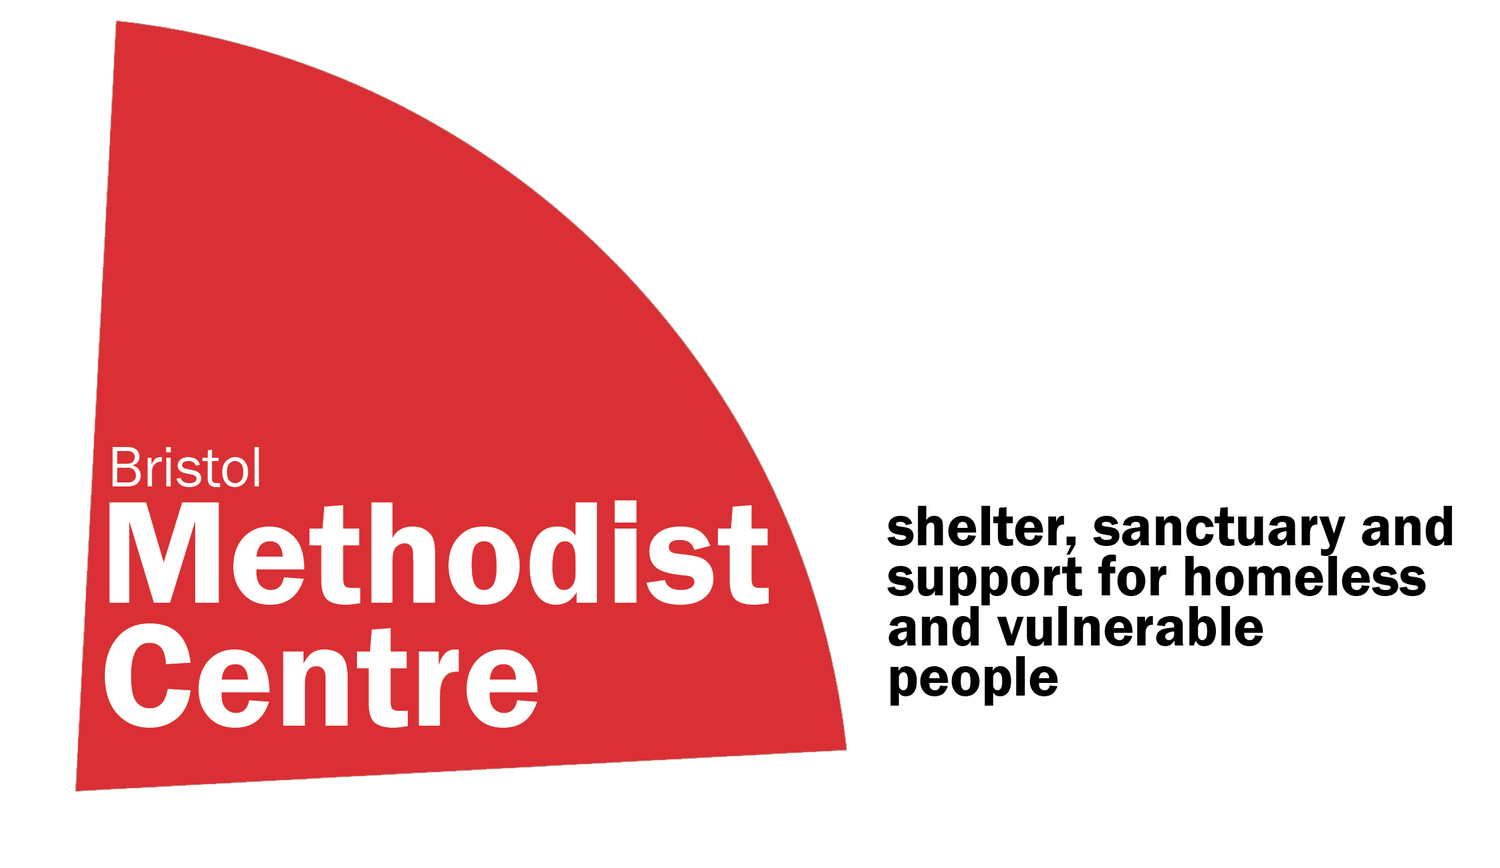 Bristol Methodist Centre